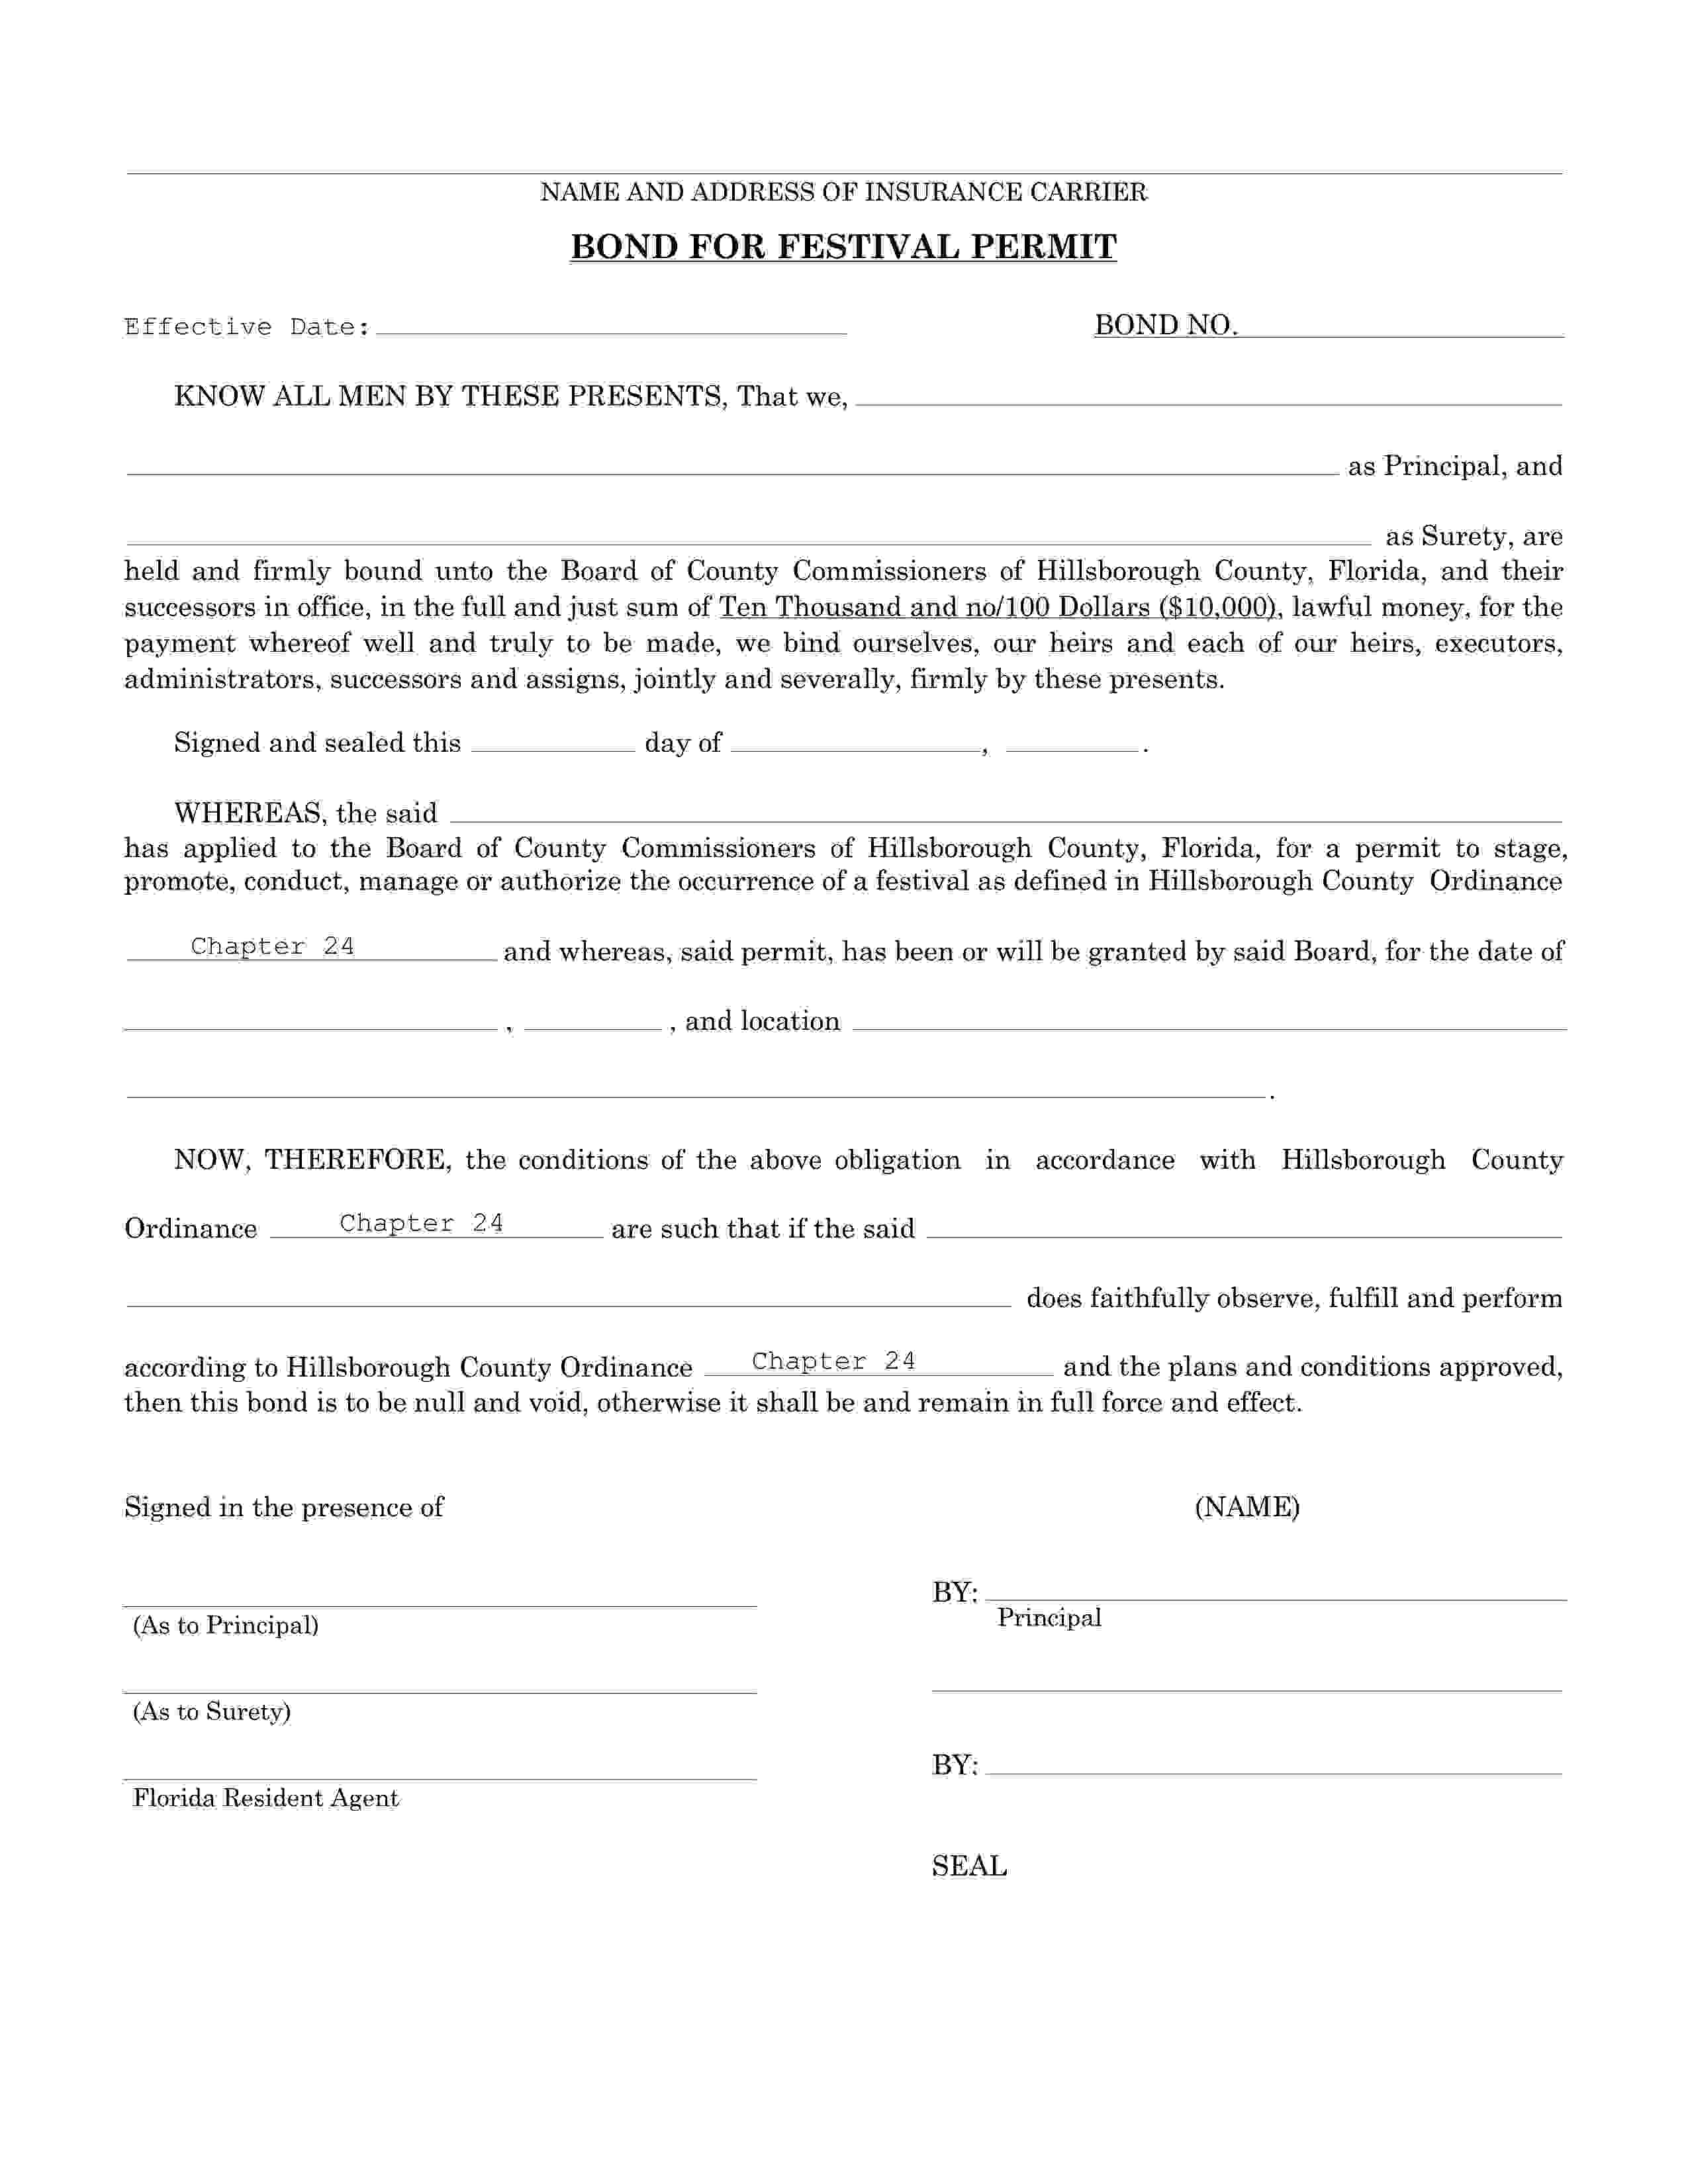 Board of County Commissioners of Hillsborough County Hillsborough - County Festival Permit Bond sample image